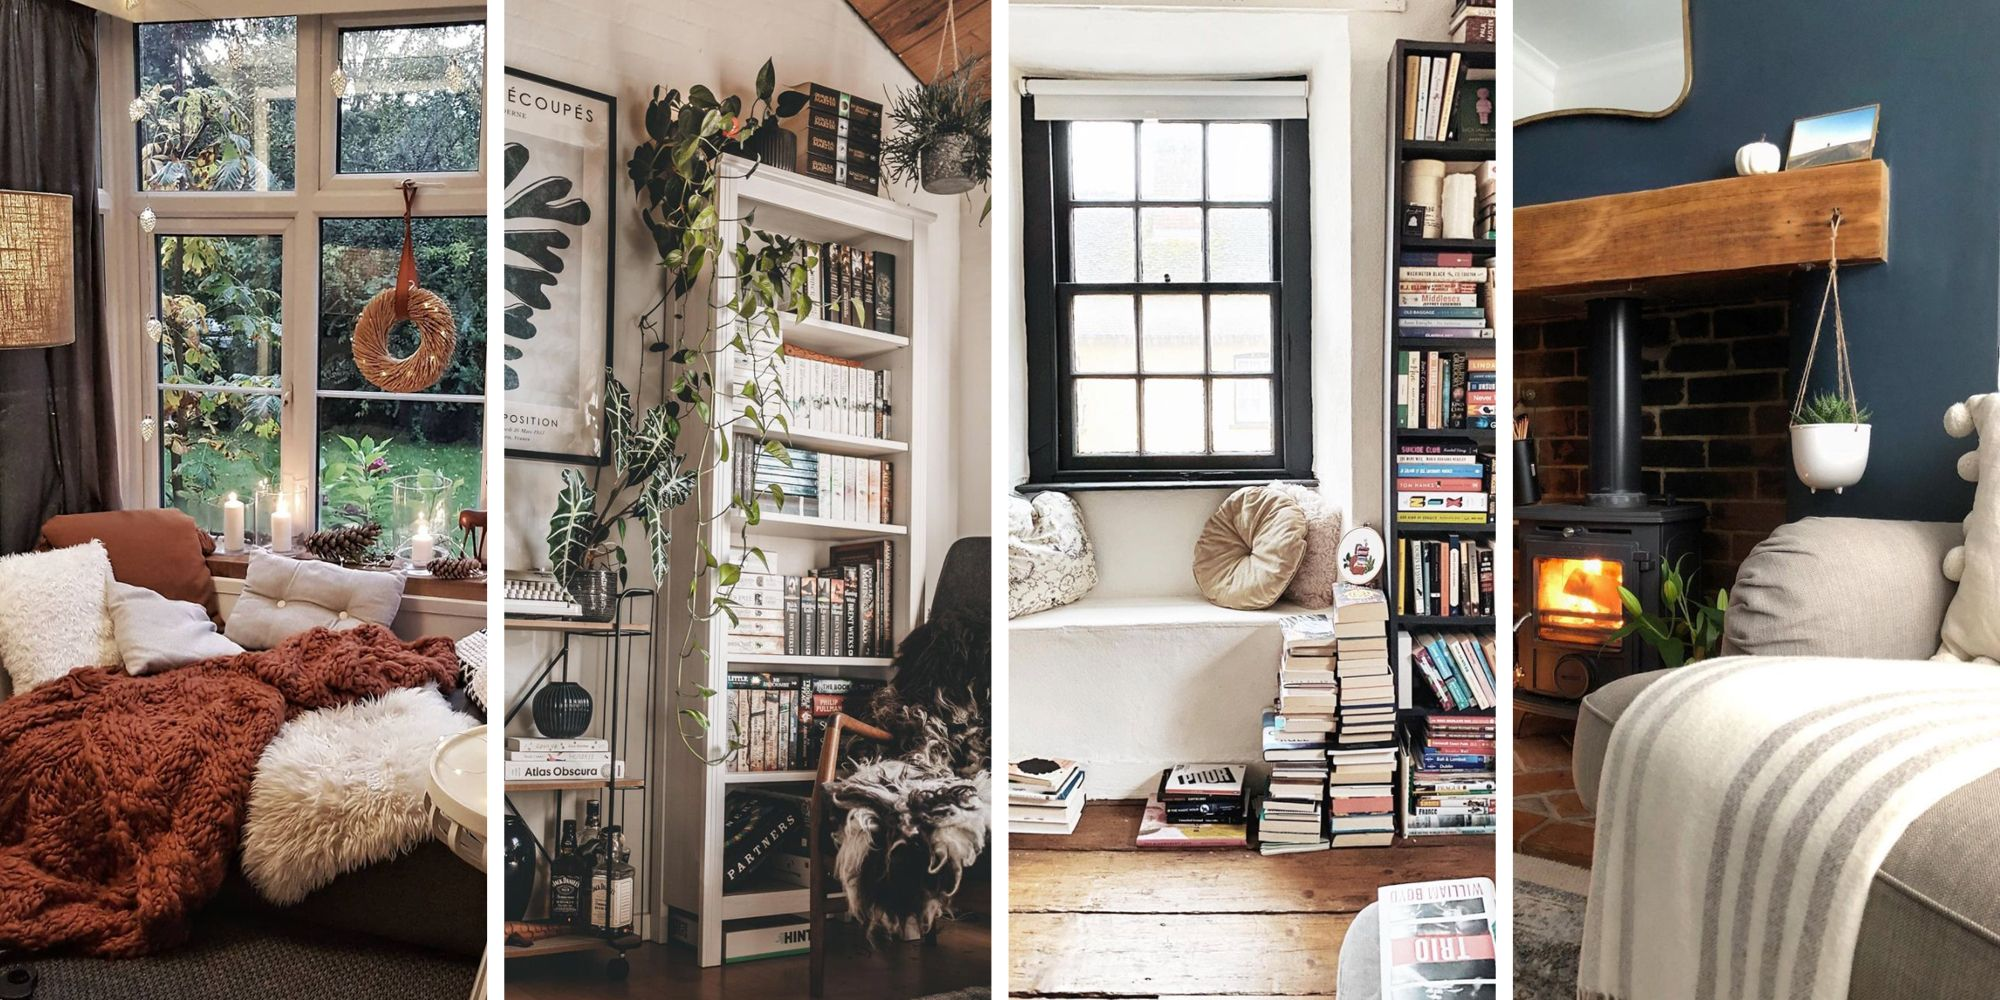 25 Cozy Reading Nook Ideas For Small Spaces 2021